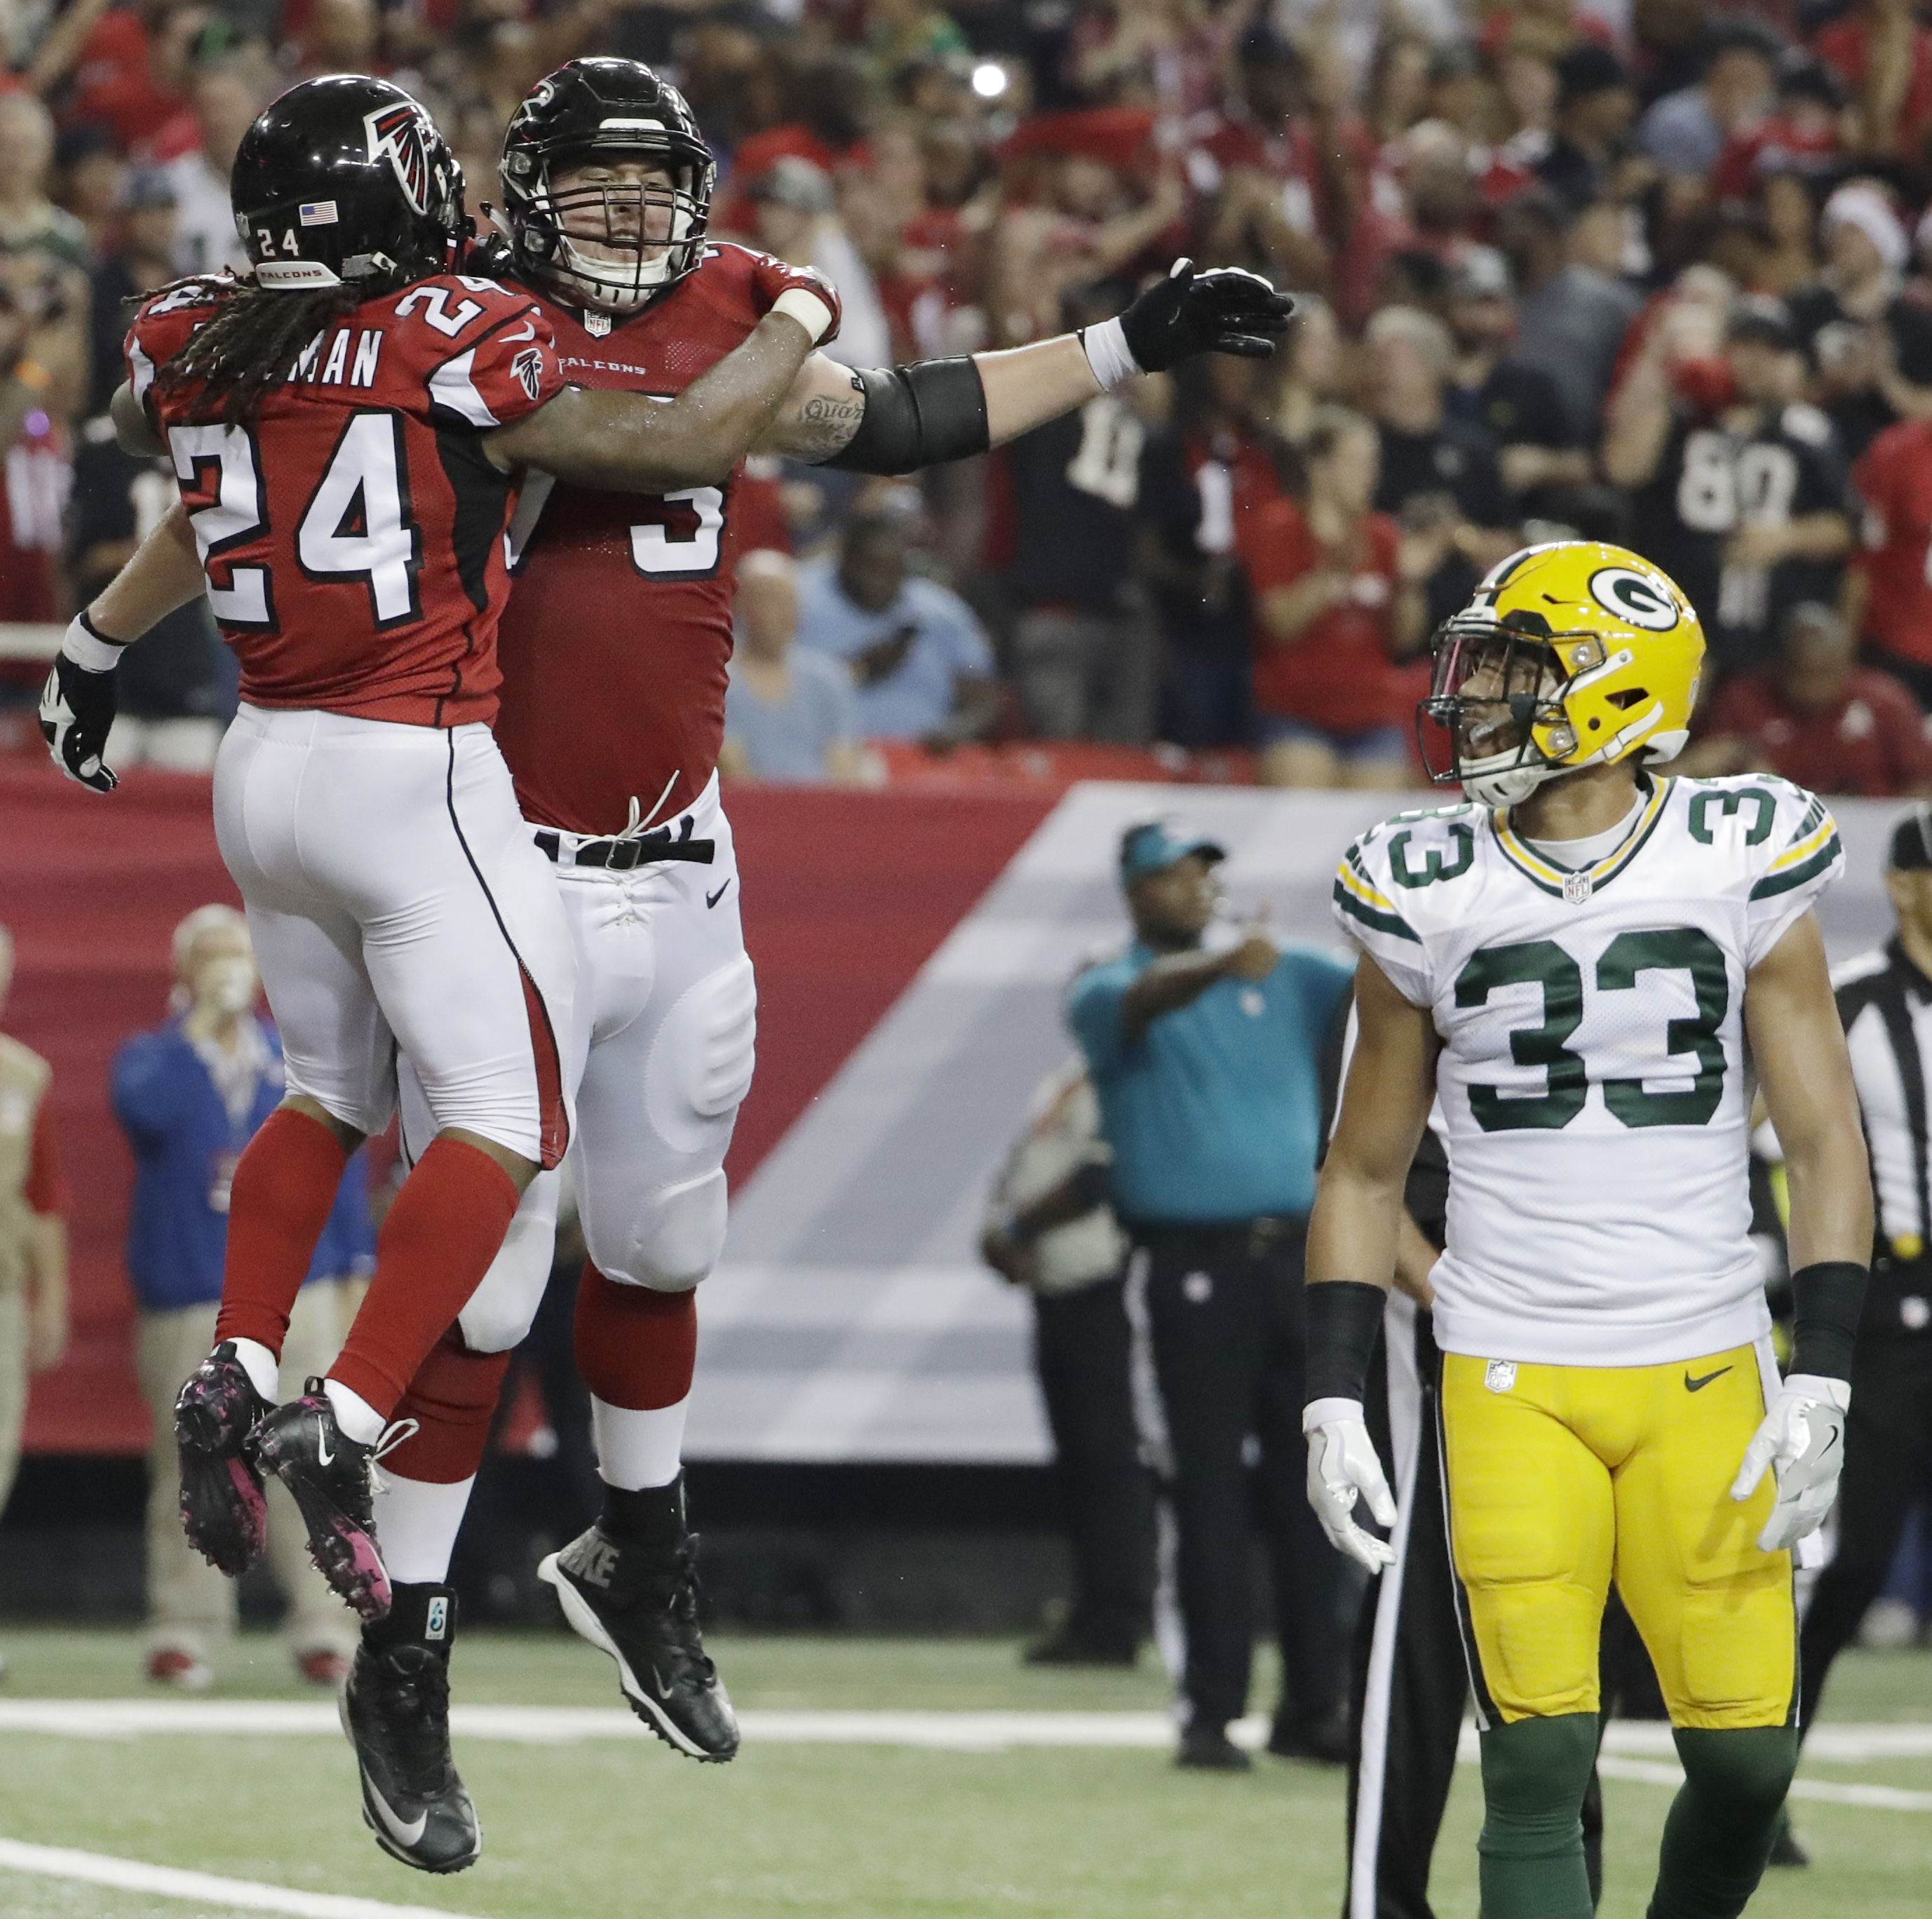 Falcons sign right tackle Ryan Schraeder to 5 year extension